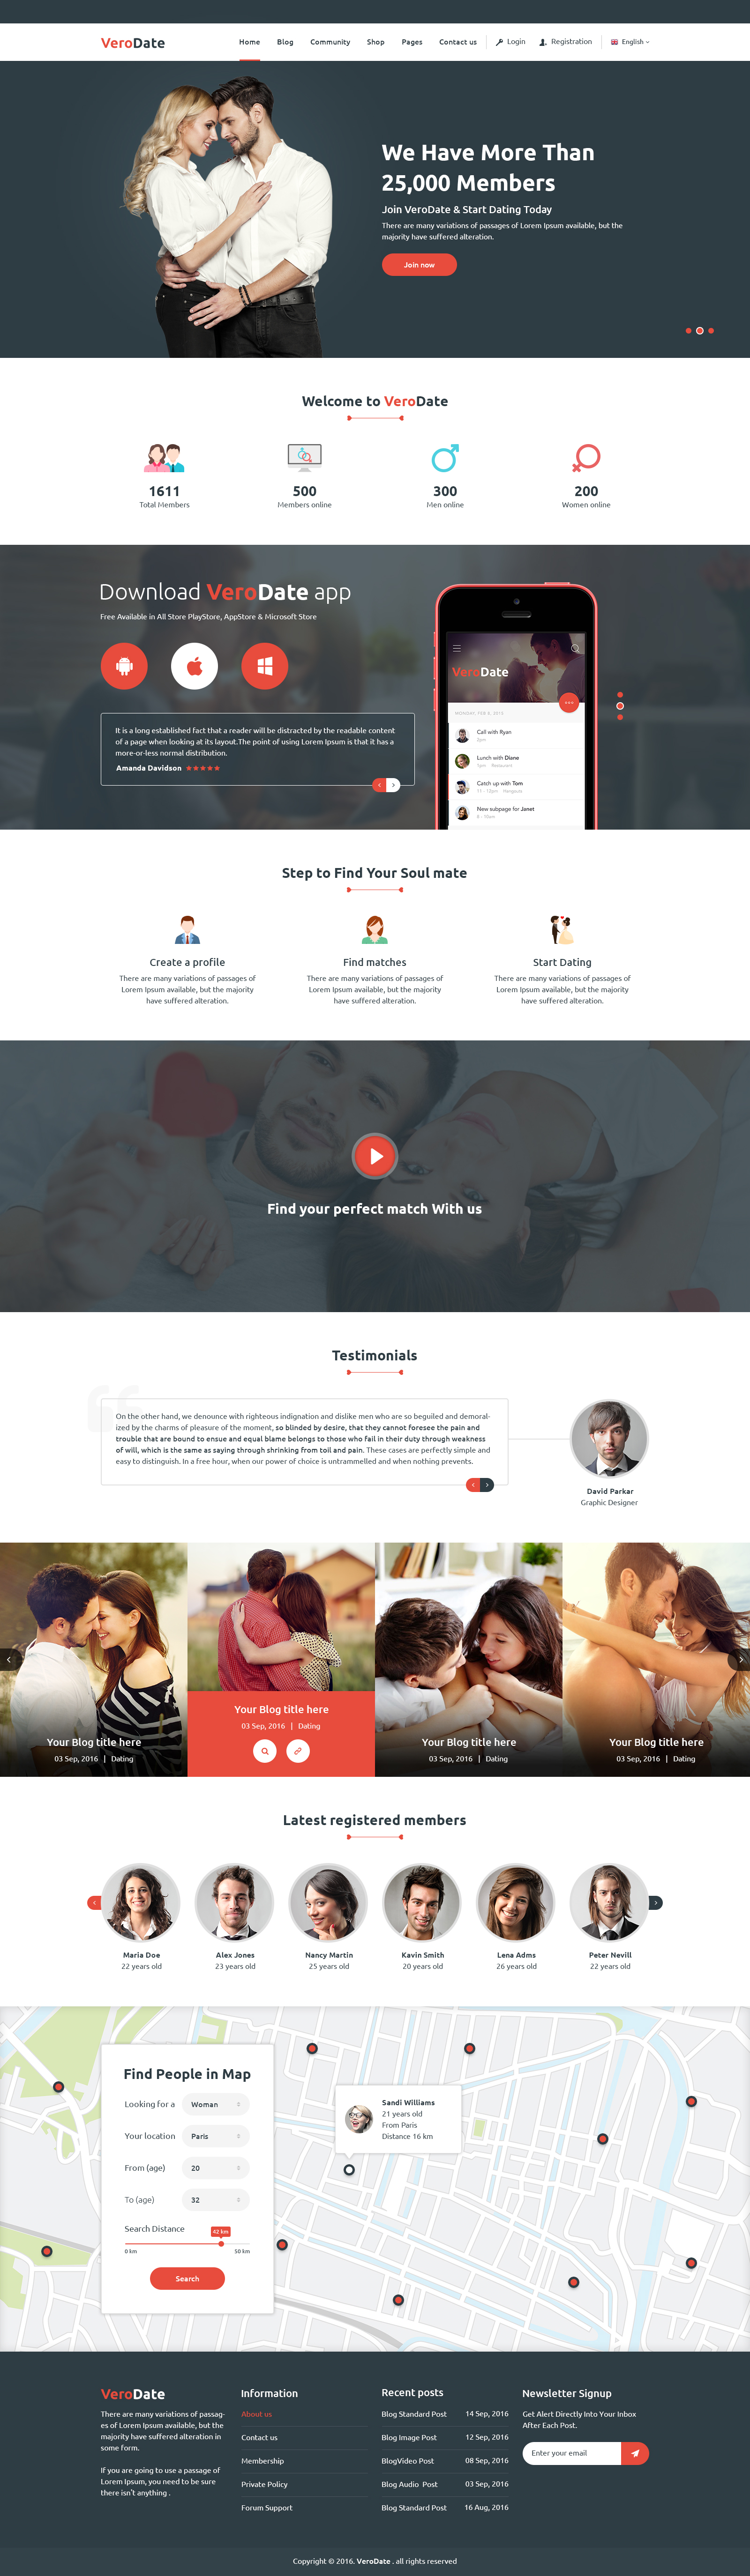 dating community template Once you've purchased skadate dating software you get free social networking and dating templates, themes and layouts.